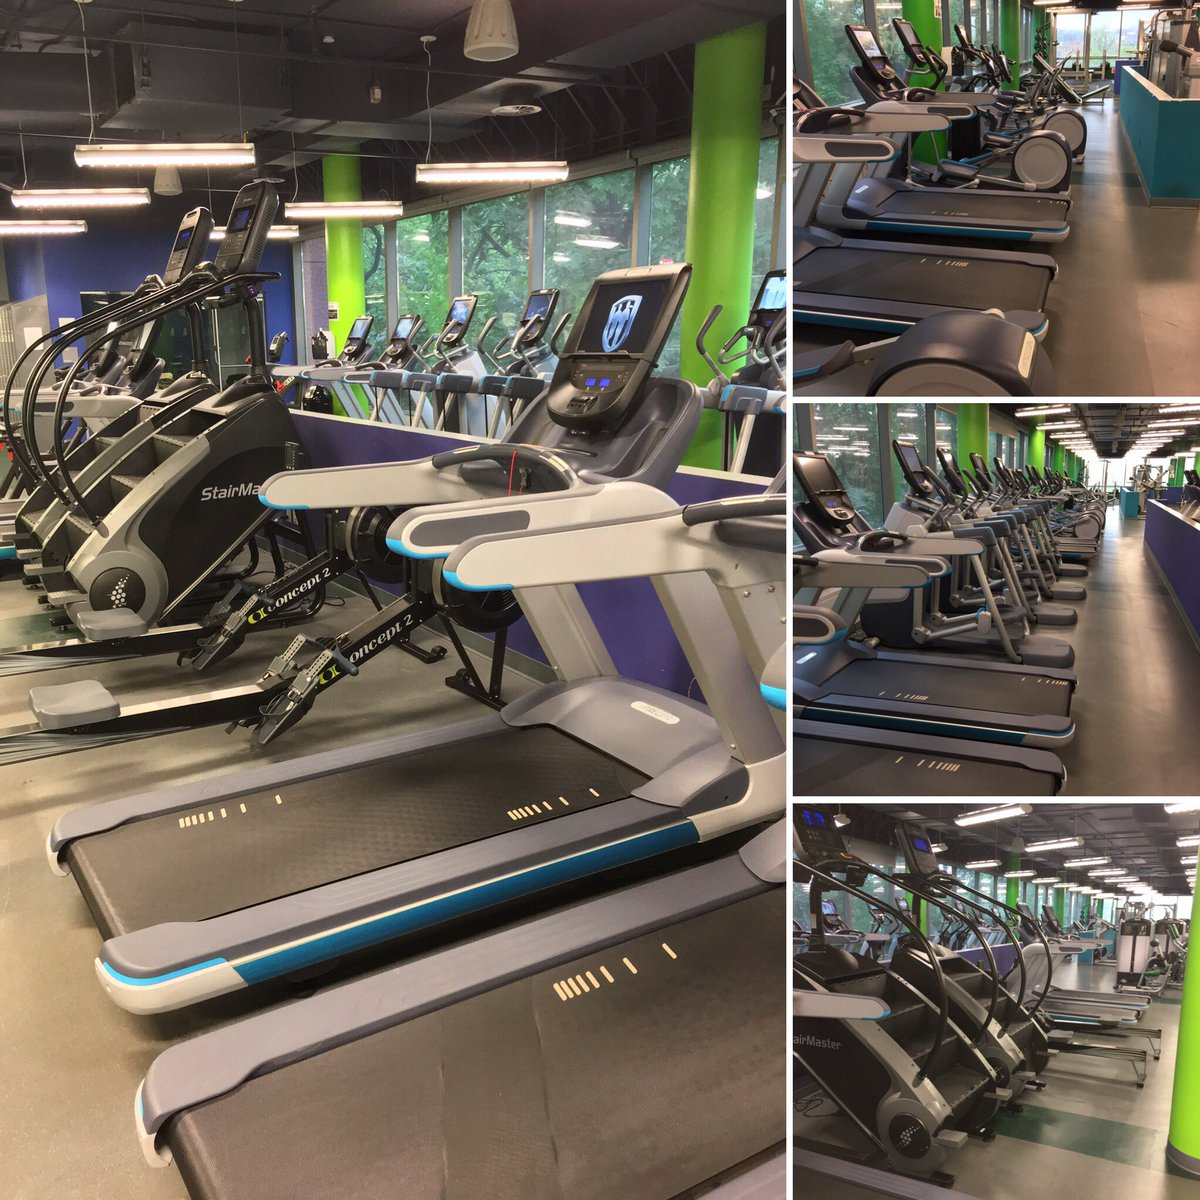 The new cardio equipment is already in place #Jaspers . Come in tomorrow and try it out. #fitness #cardio #health #heart<br>http://pic.twitter.com/i8ZWa1QHRY